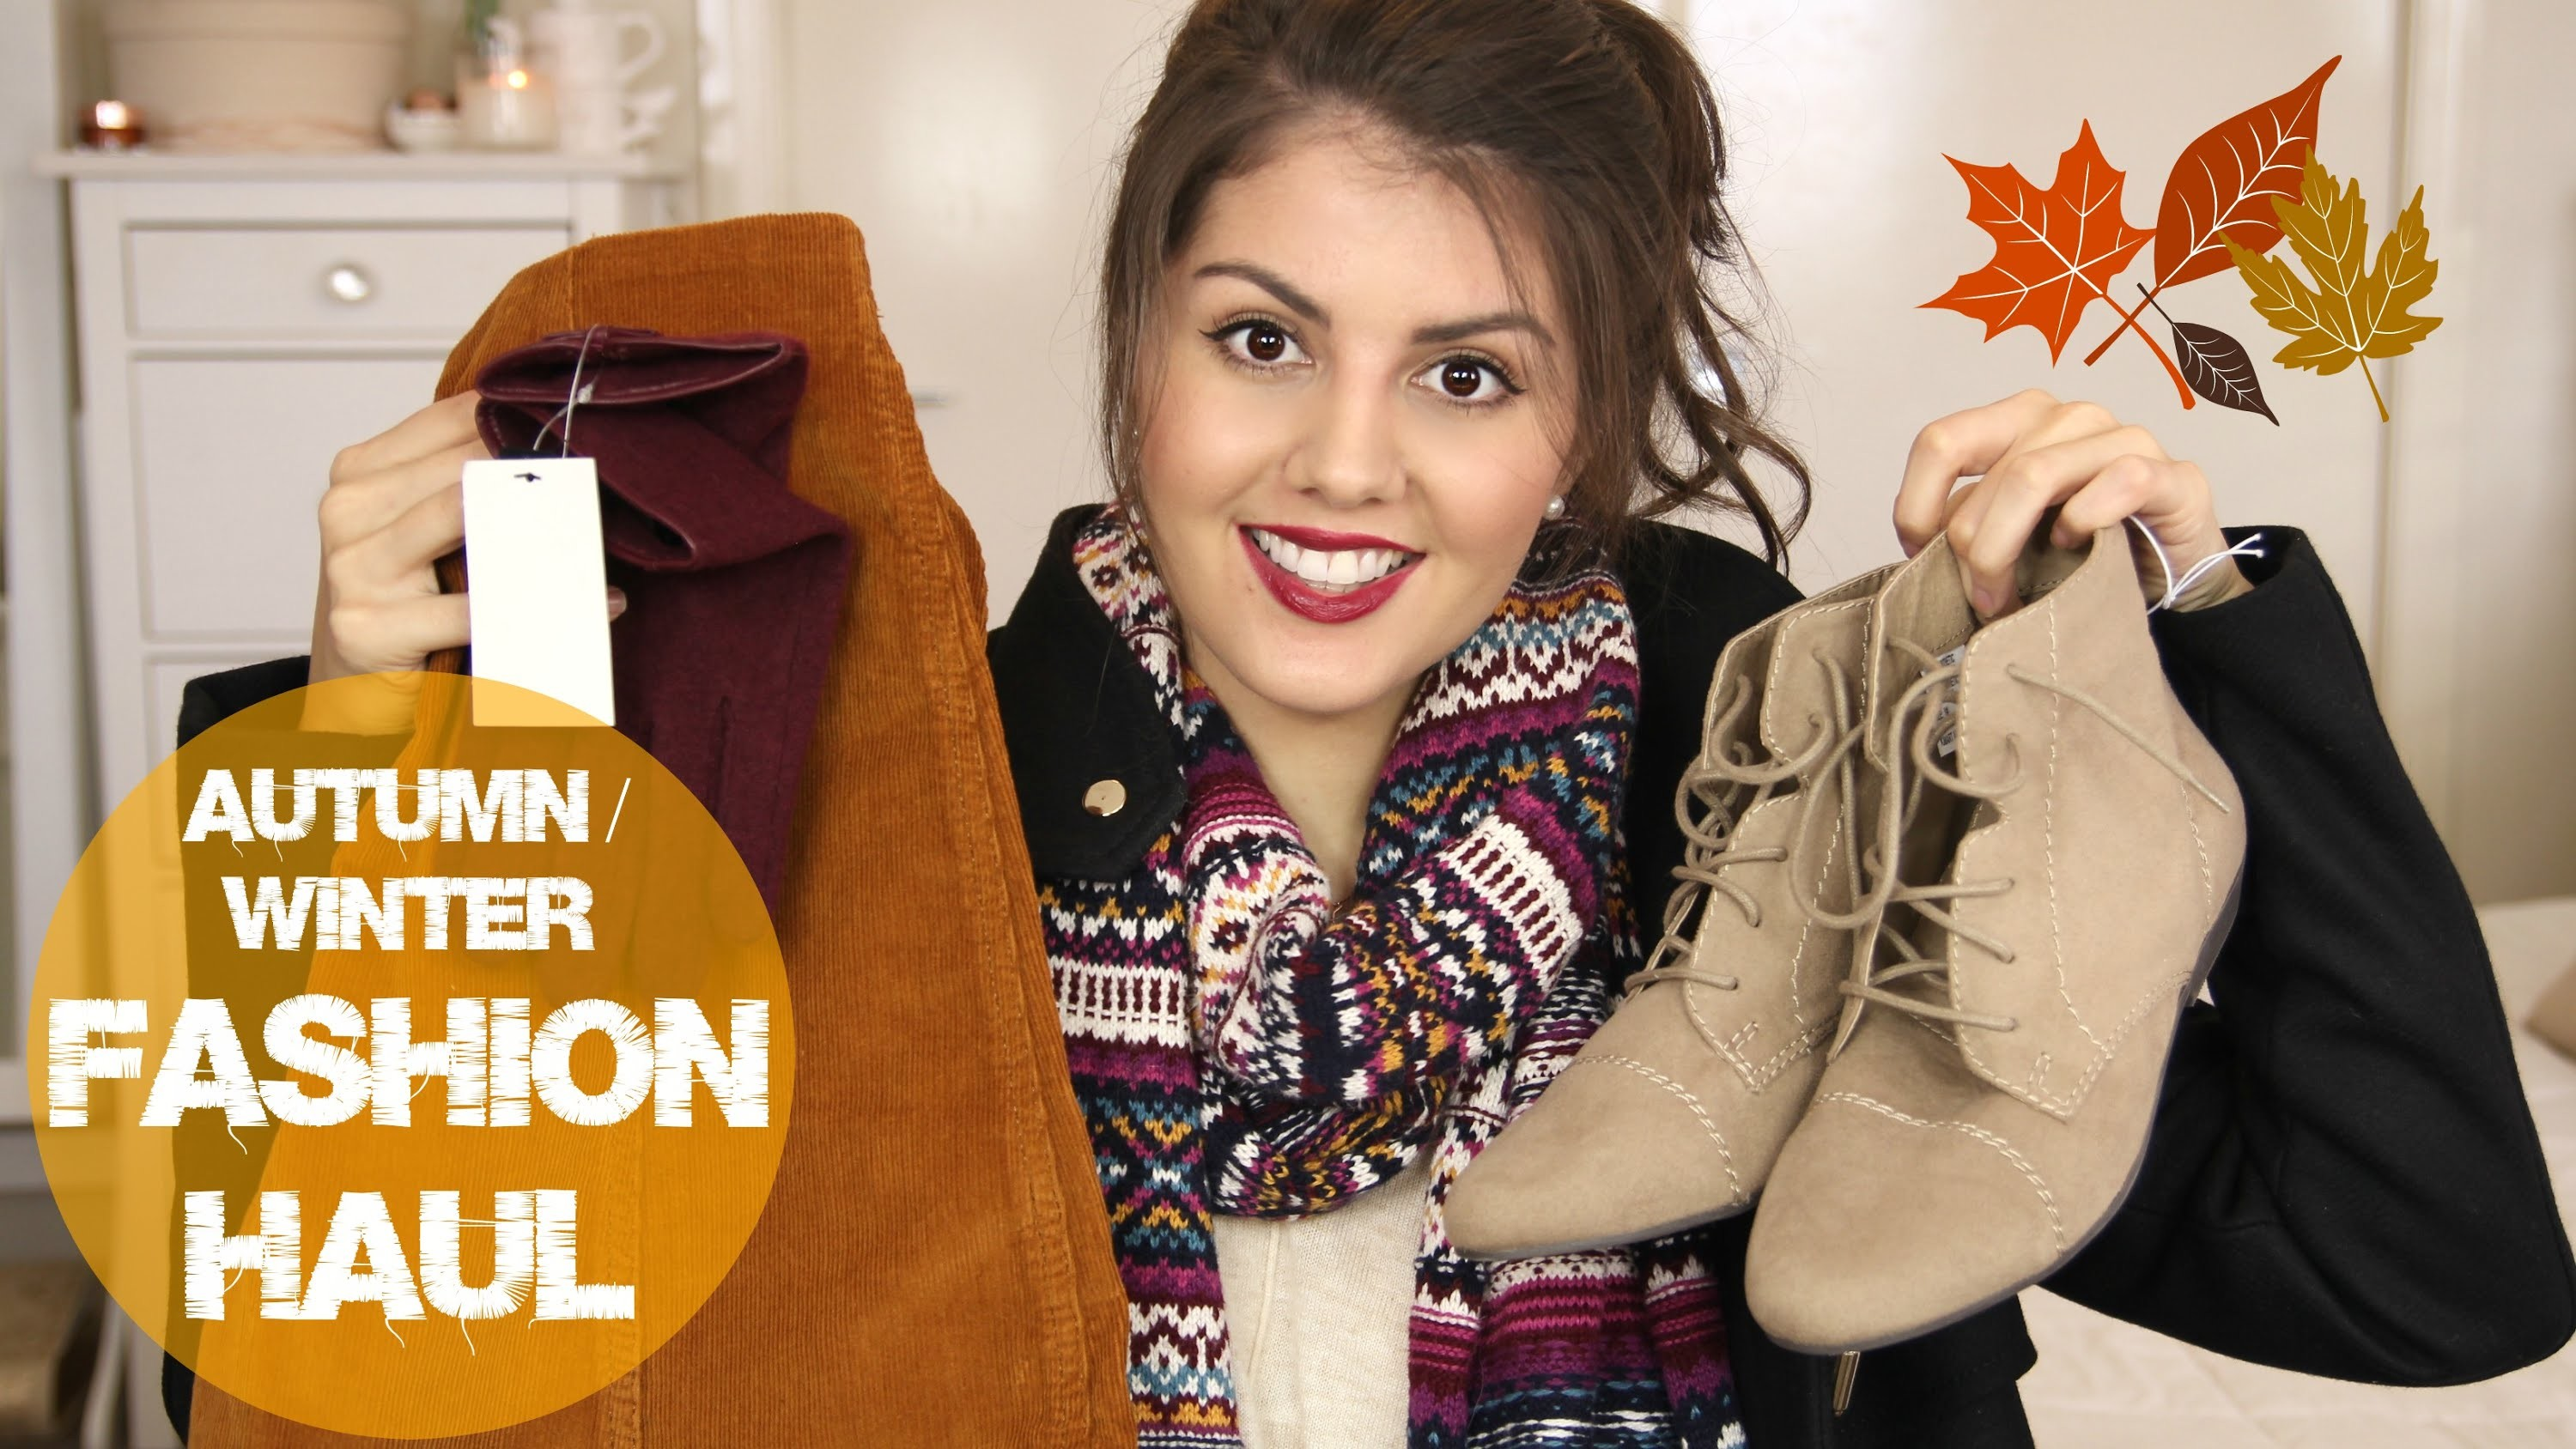 Autumn. Winter '15 Clothing Haul. Topshop, Zara, H&M, Forever 21, Kmart, Jay Jays, Temt